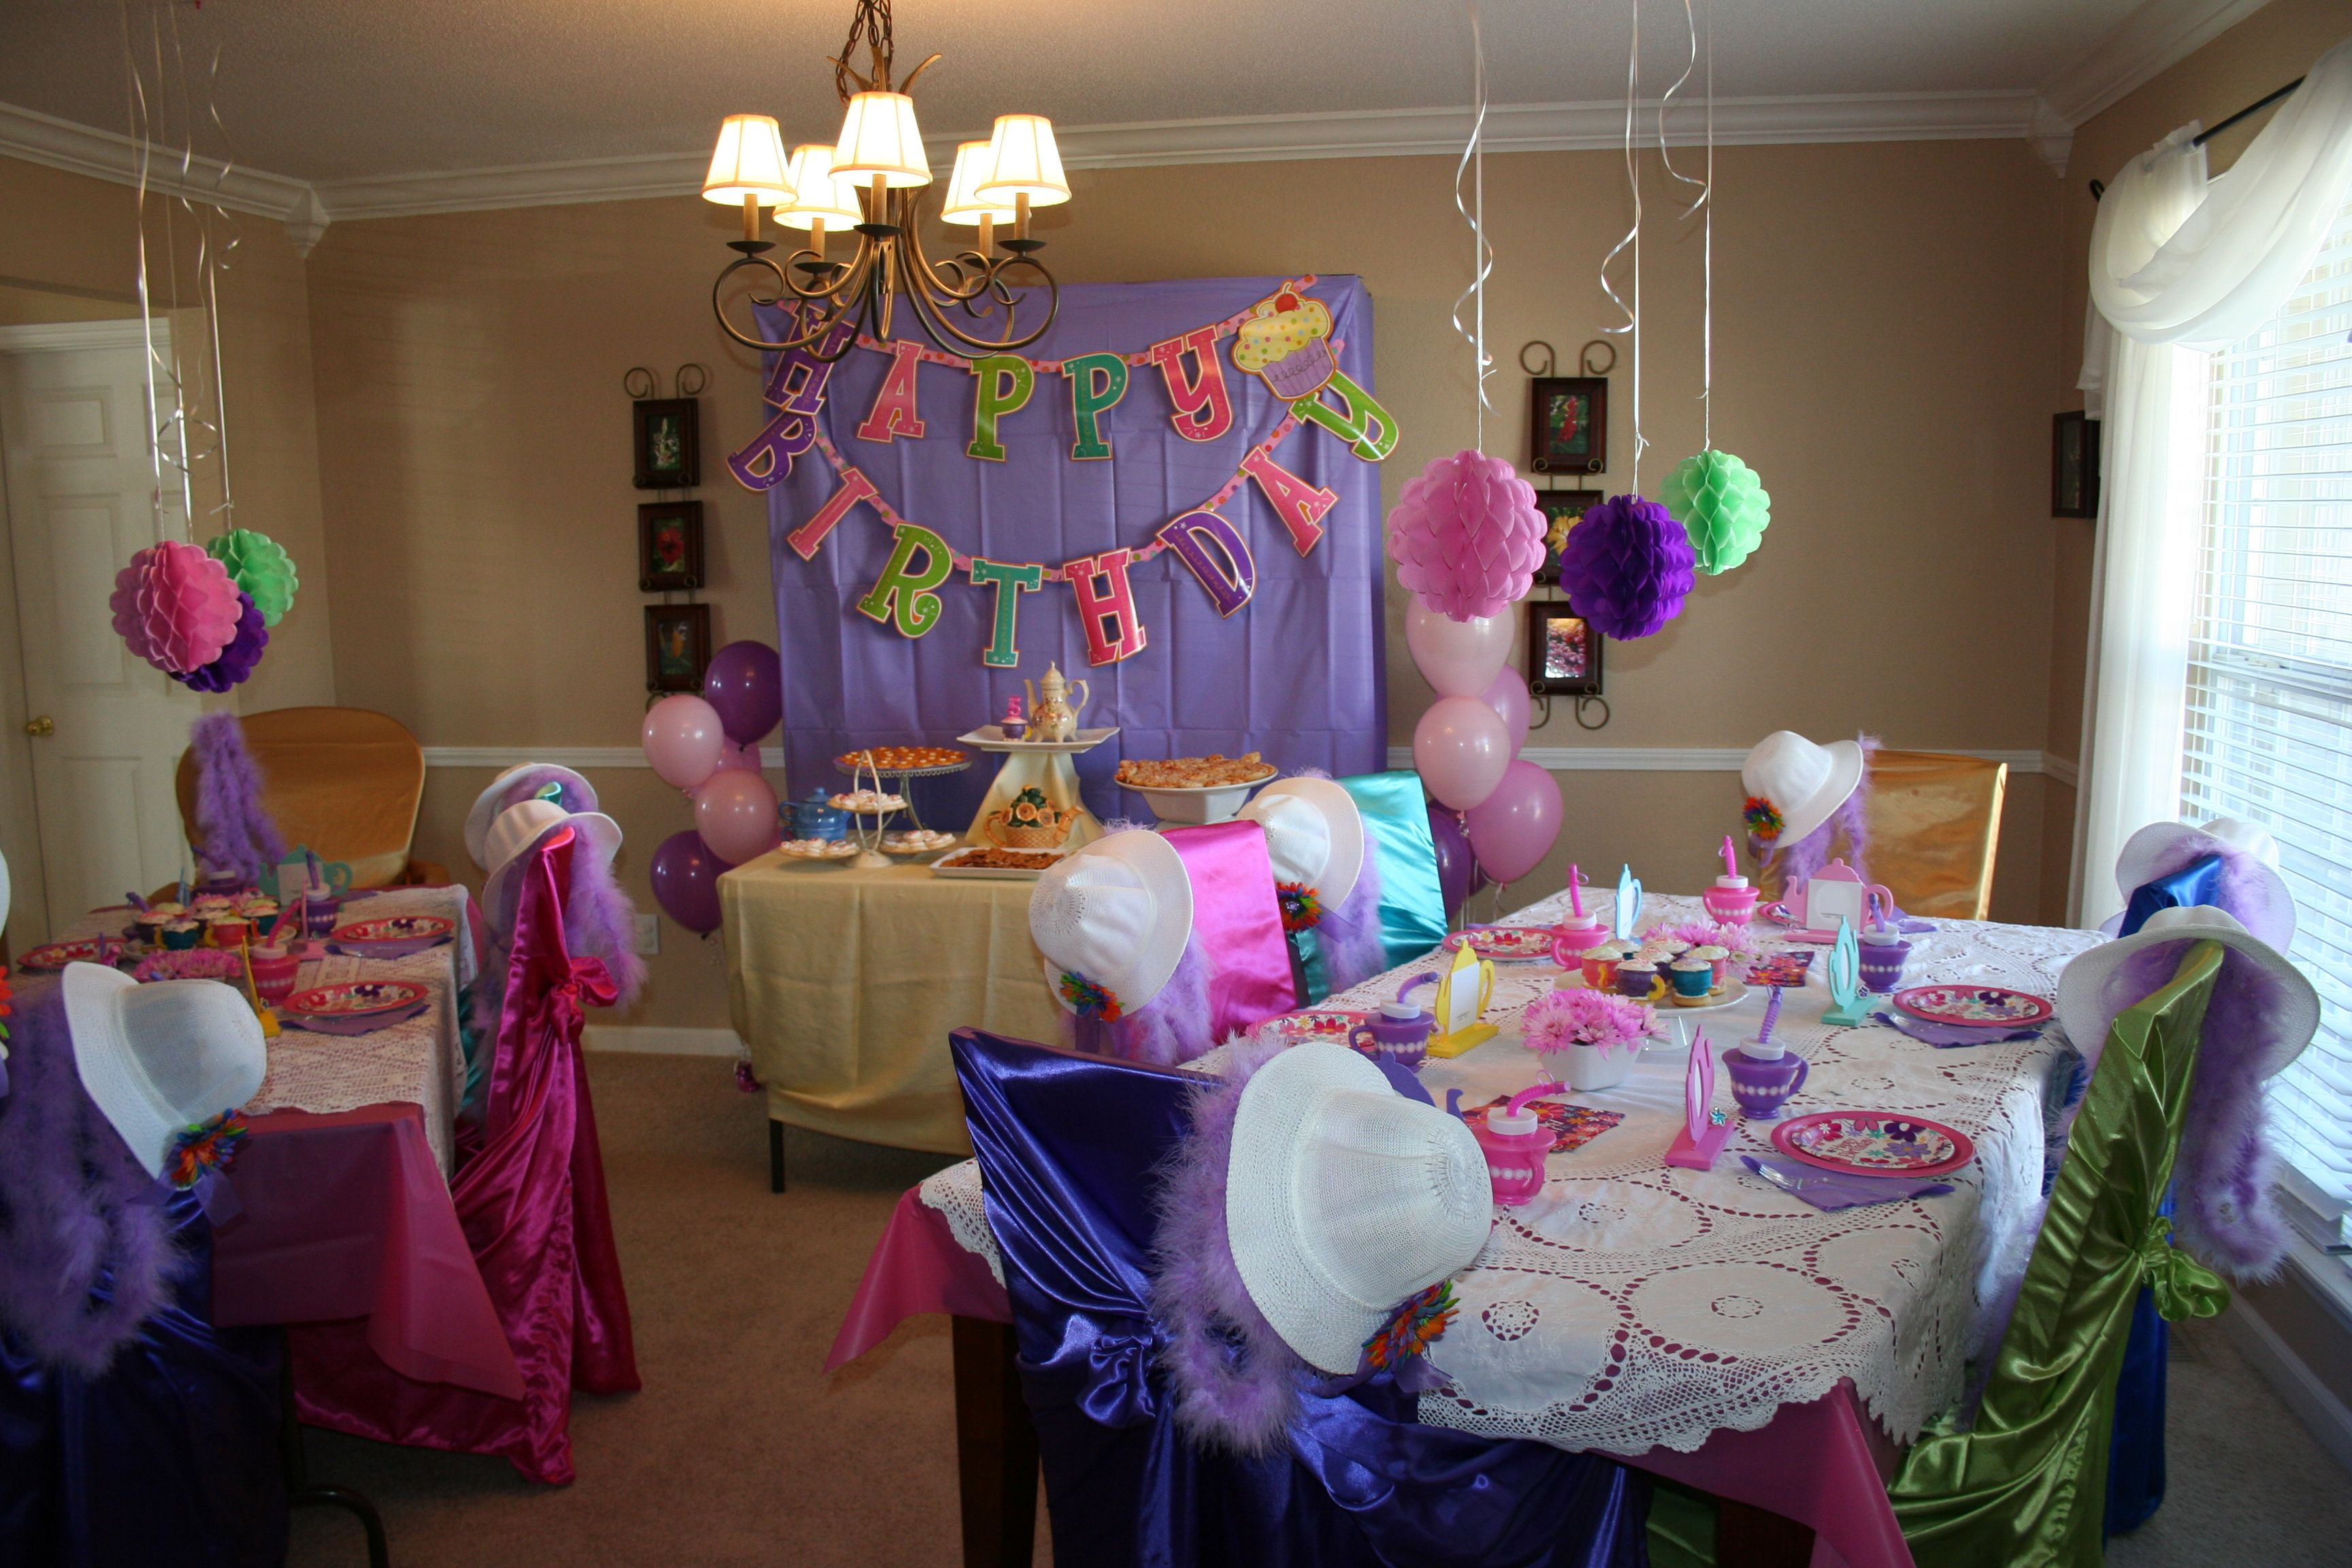 My Girl S 5th Birthday Party Tea Time My First Attempt At A Real Theme Party At Home For My Daughter Girls Birthday Party Birthday Birthday Parties